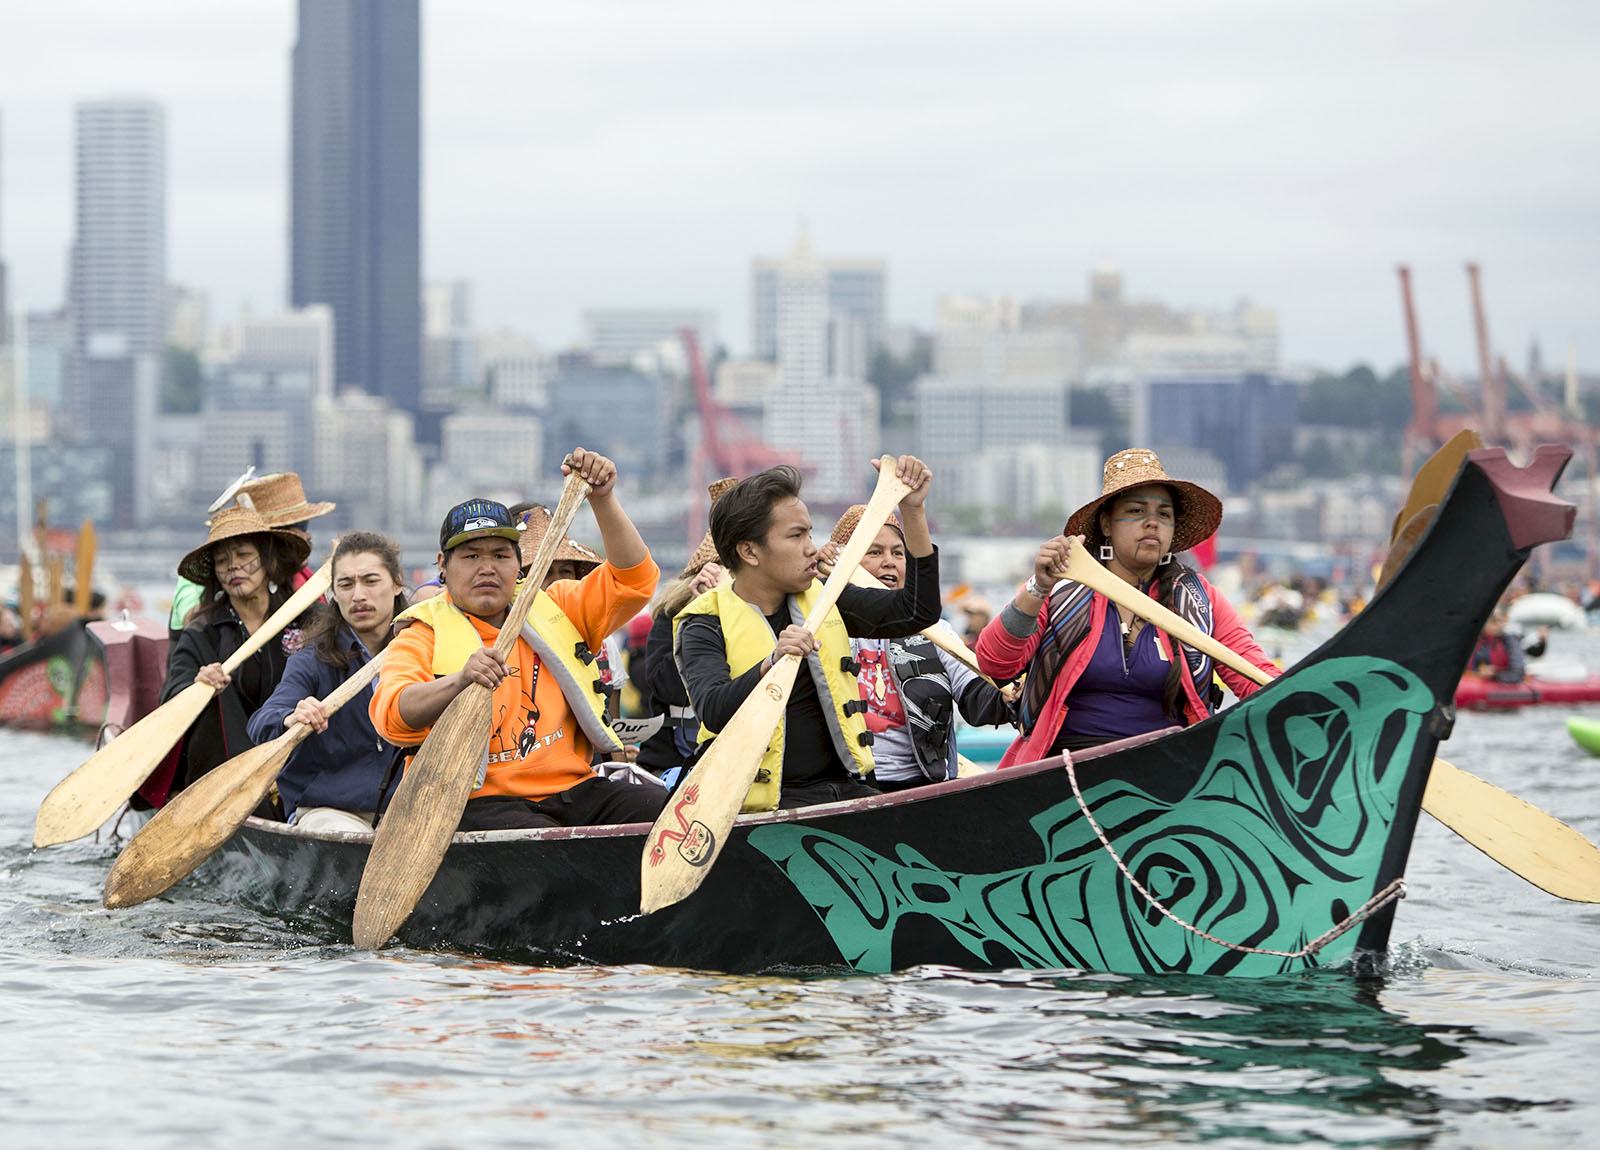 Swinomish Native Americas in a canoe, along with activists in kayaks protest Saturday, May 16, 2015, near the Polar Pioneer, Shell Oil Company's  drilling rig, which is moored at the Port of Seattle's Terminal 5